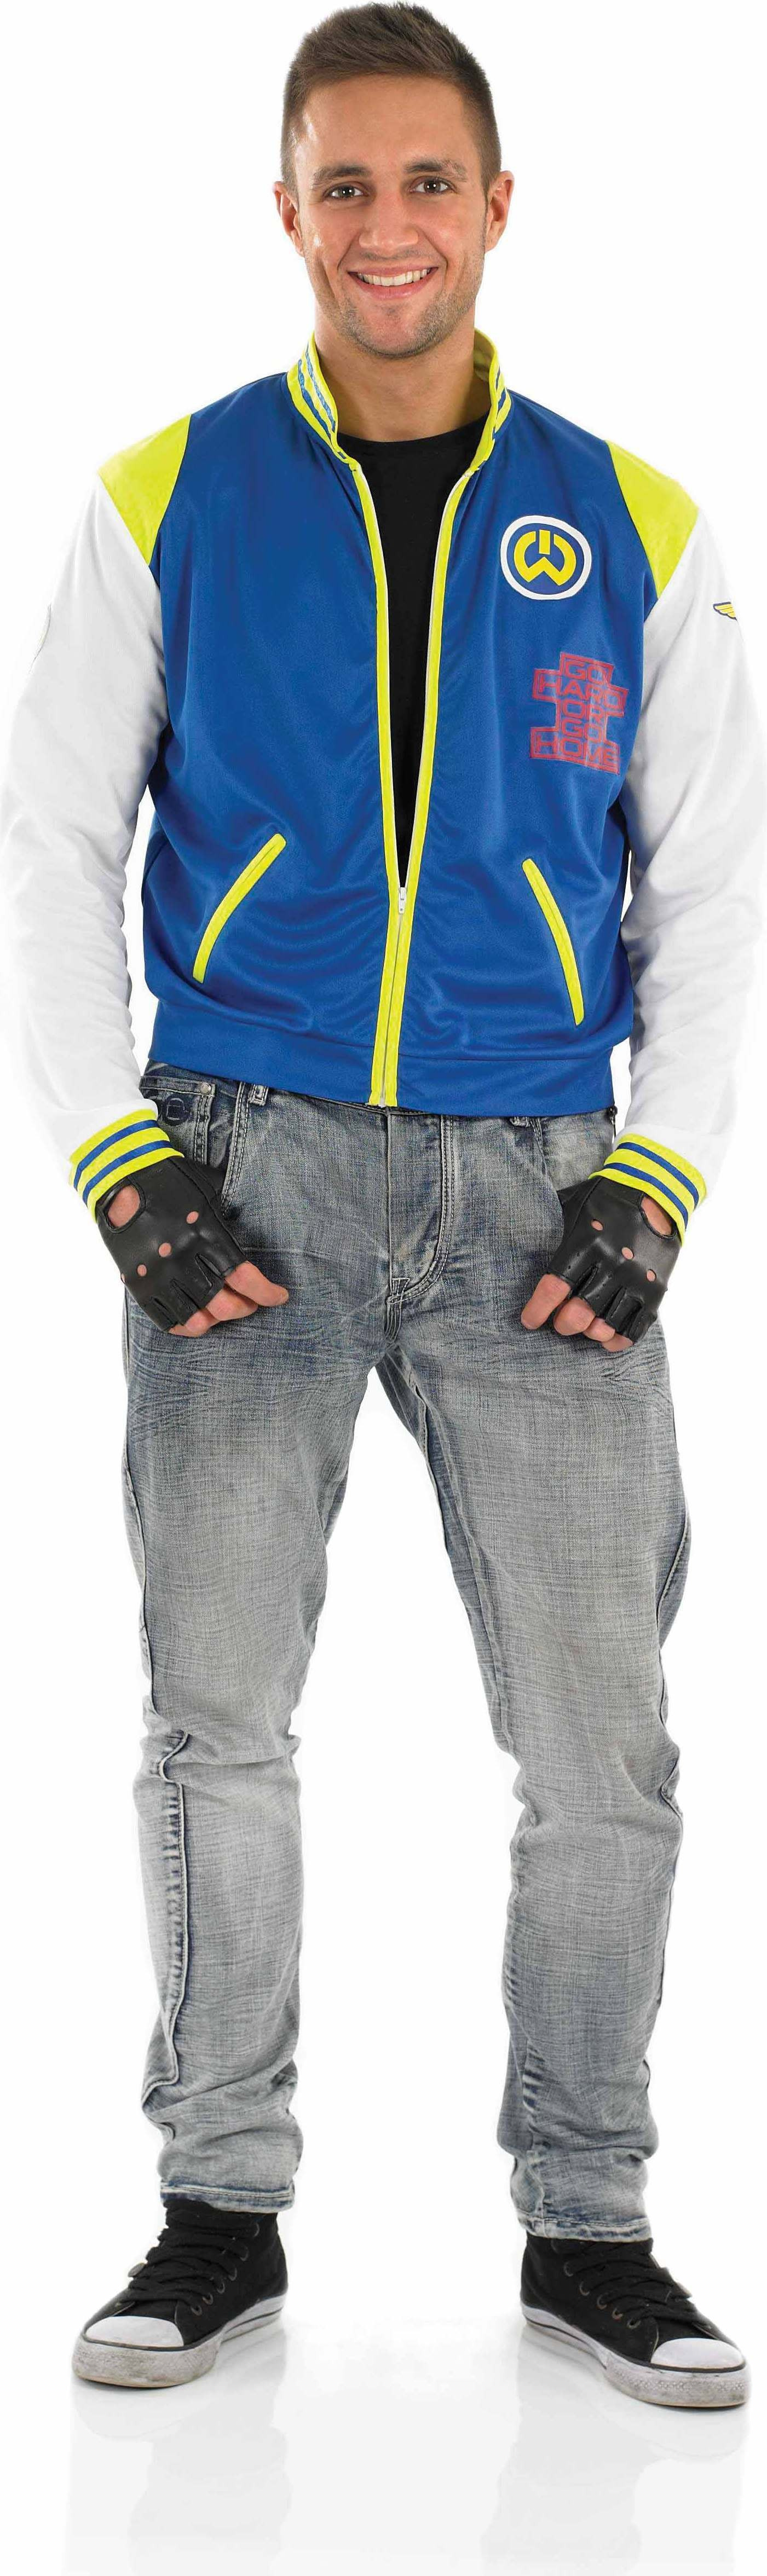 Mens Rap Pop Star Music Outfit (Blue, Green)